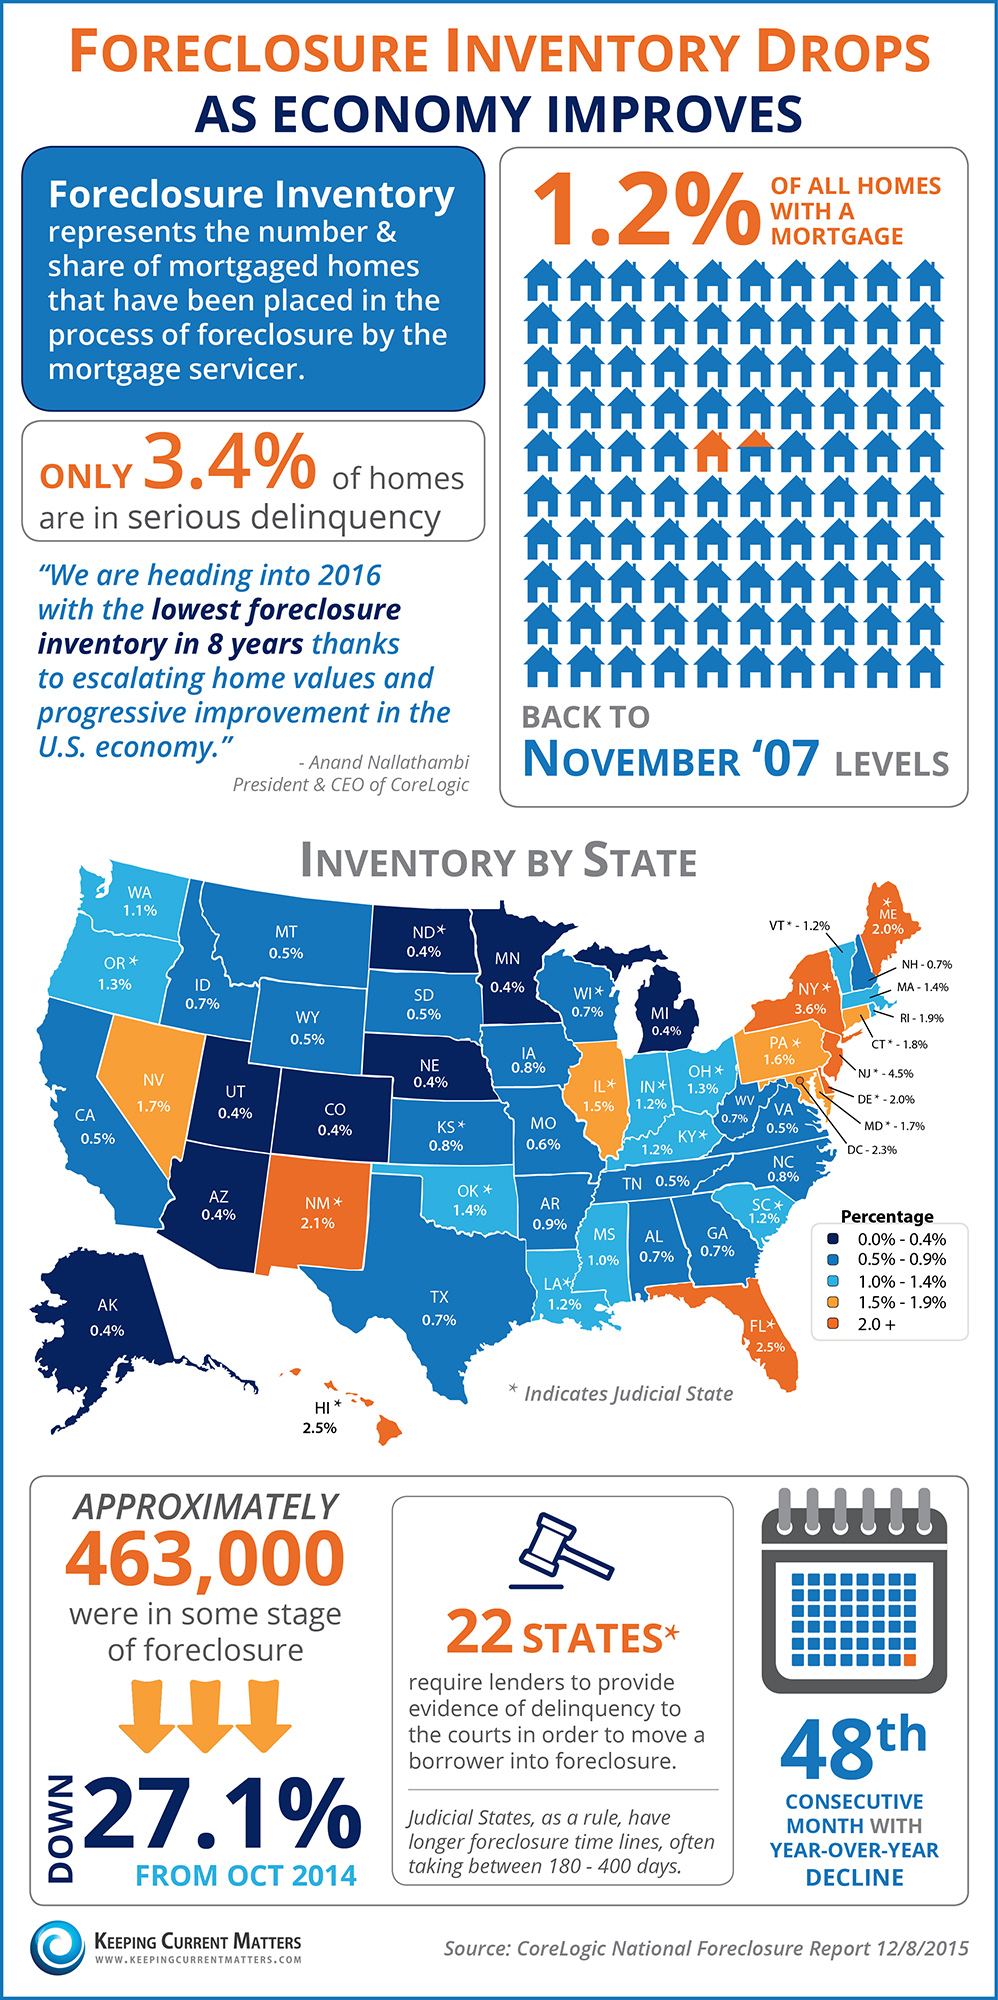 Foreclosure Inventory Drops As Economy Improves [INFOGRAPHIC] | Keeping Current Matters